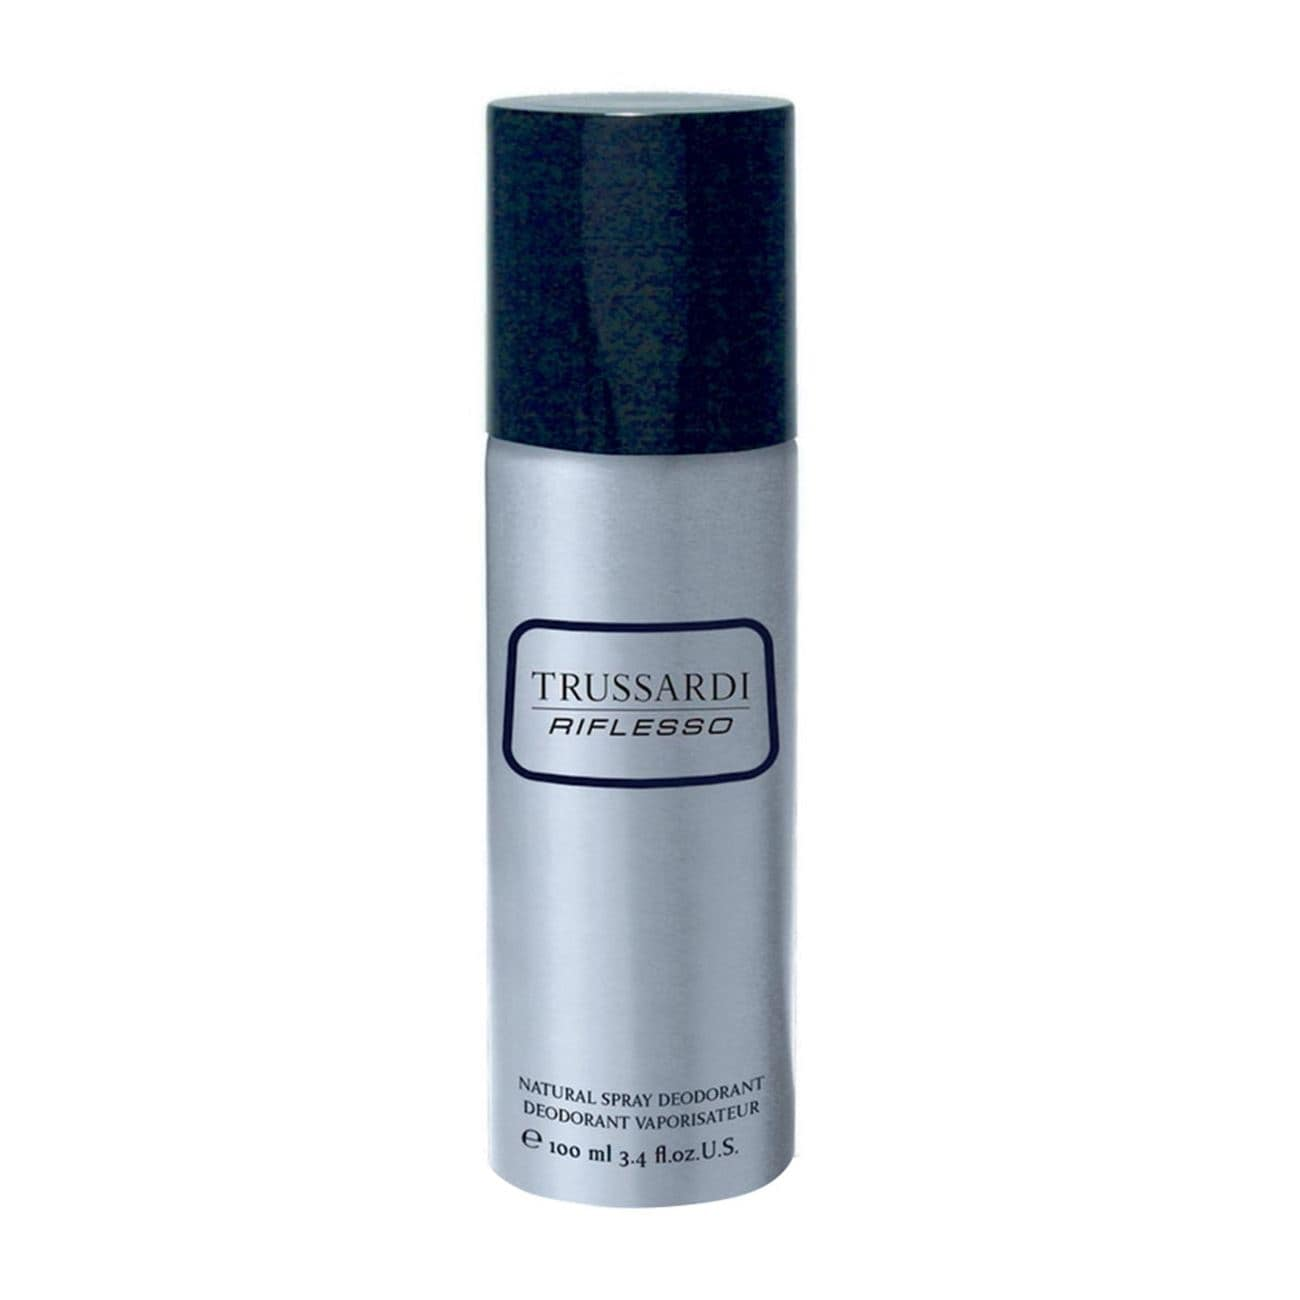 Riflesso Deodorant Spray